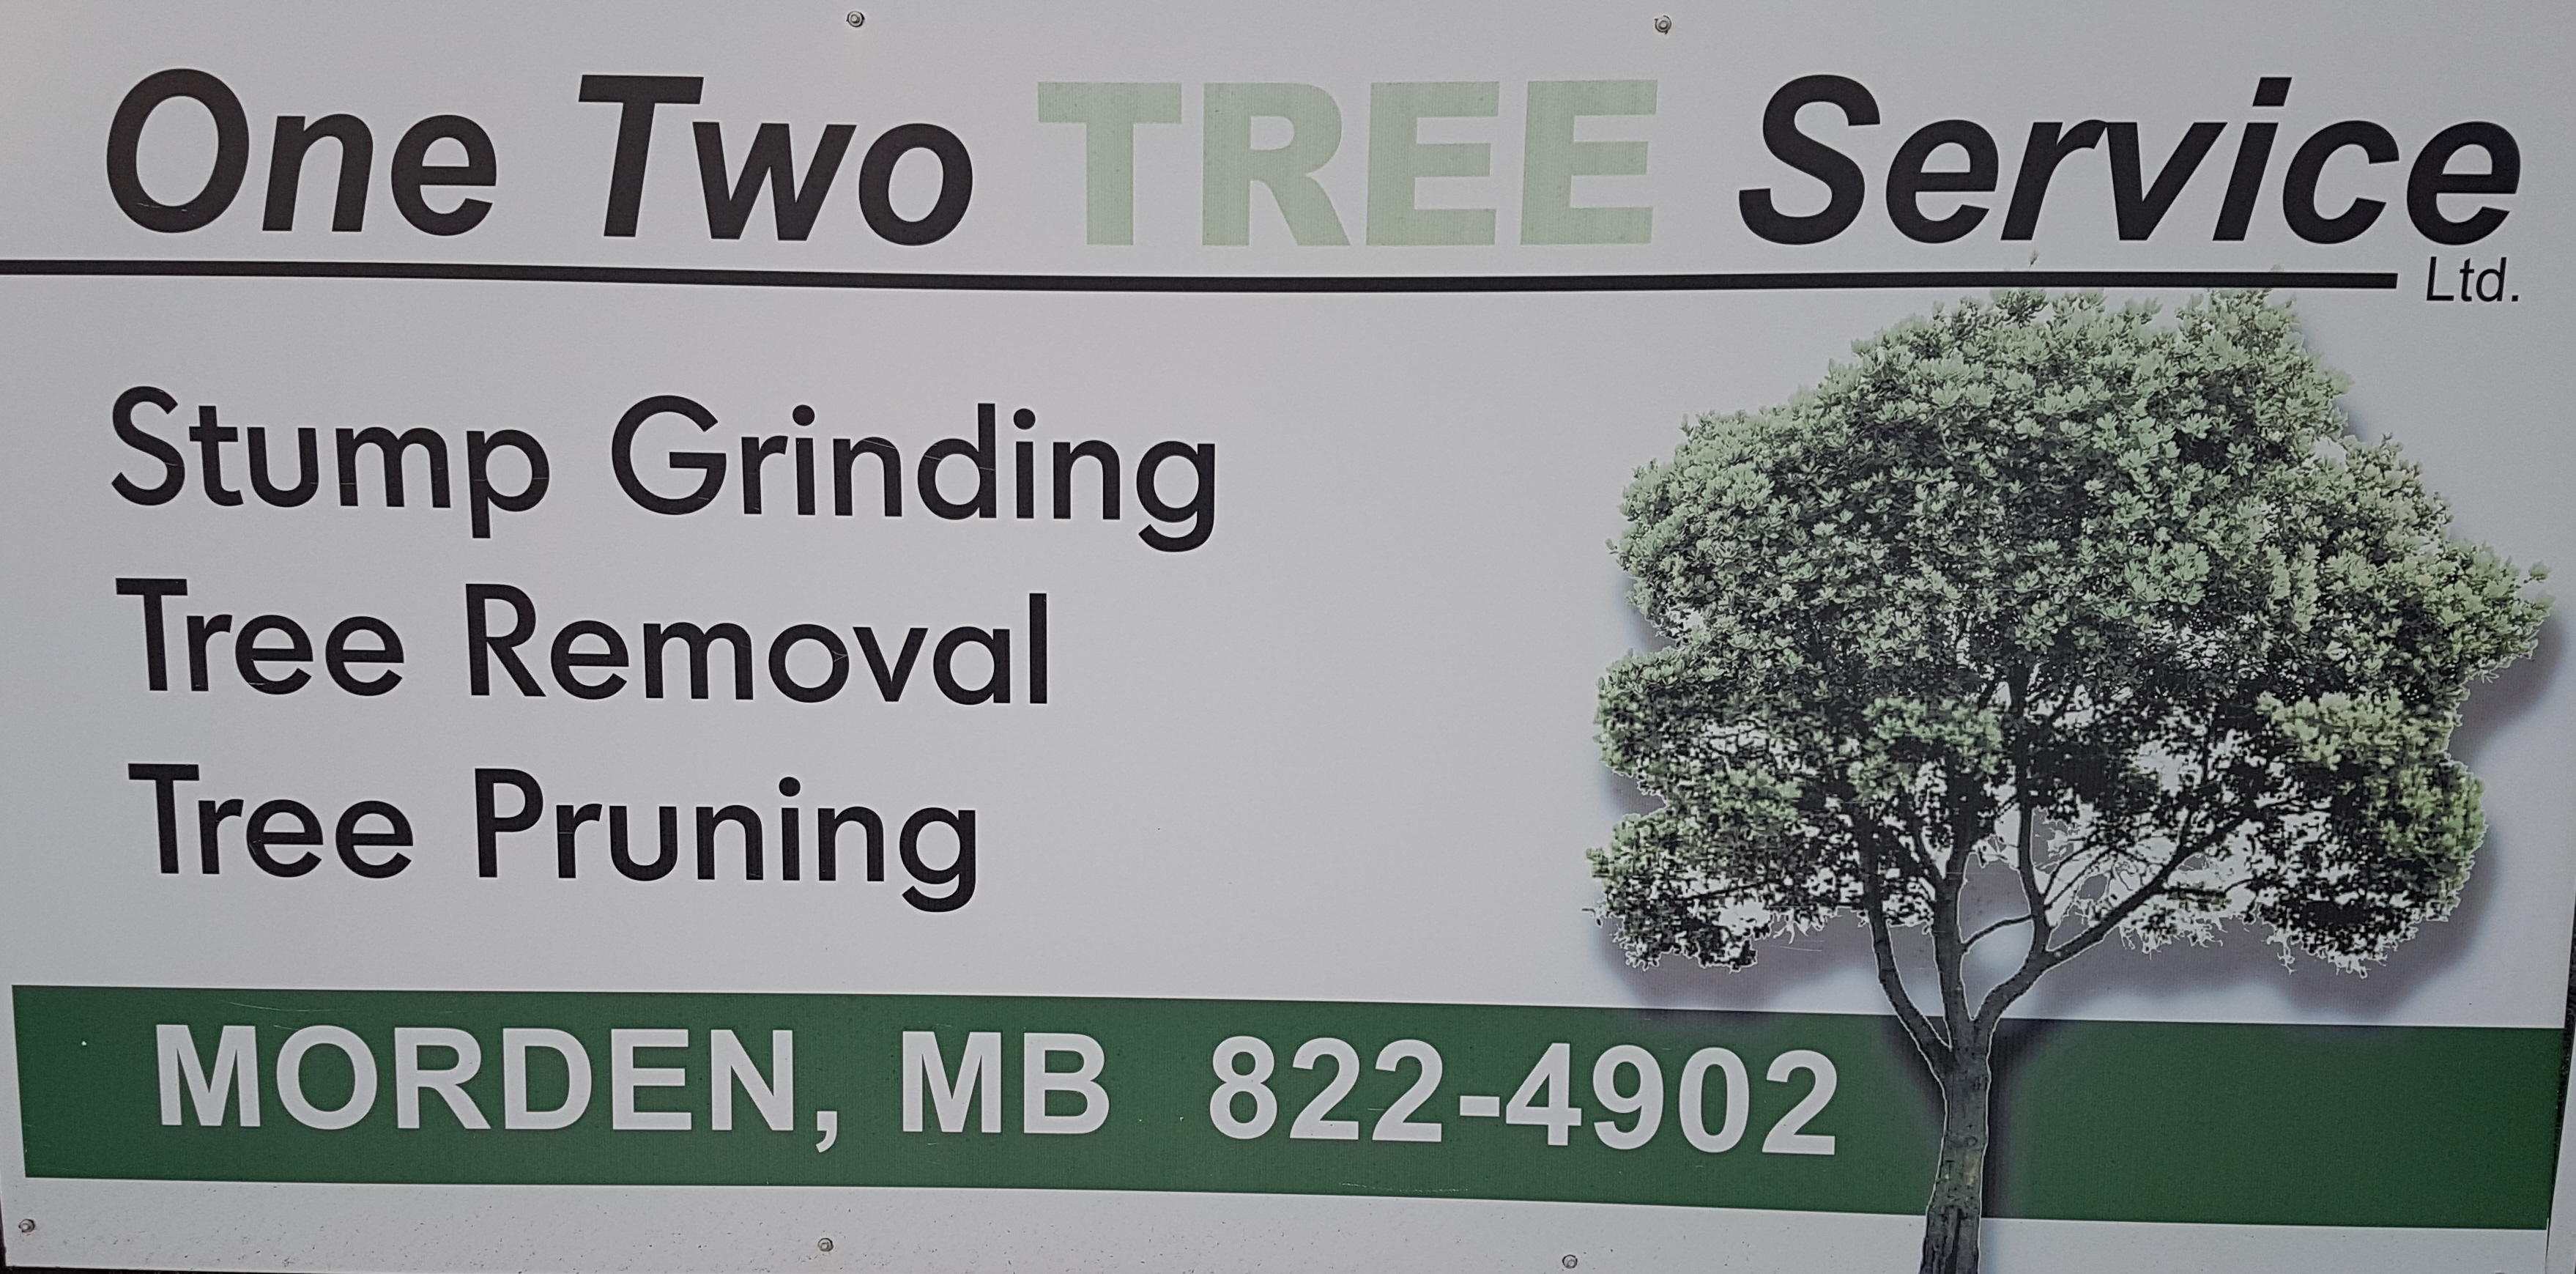 ONE TWO TREE SERVICE